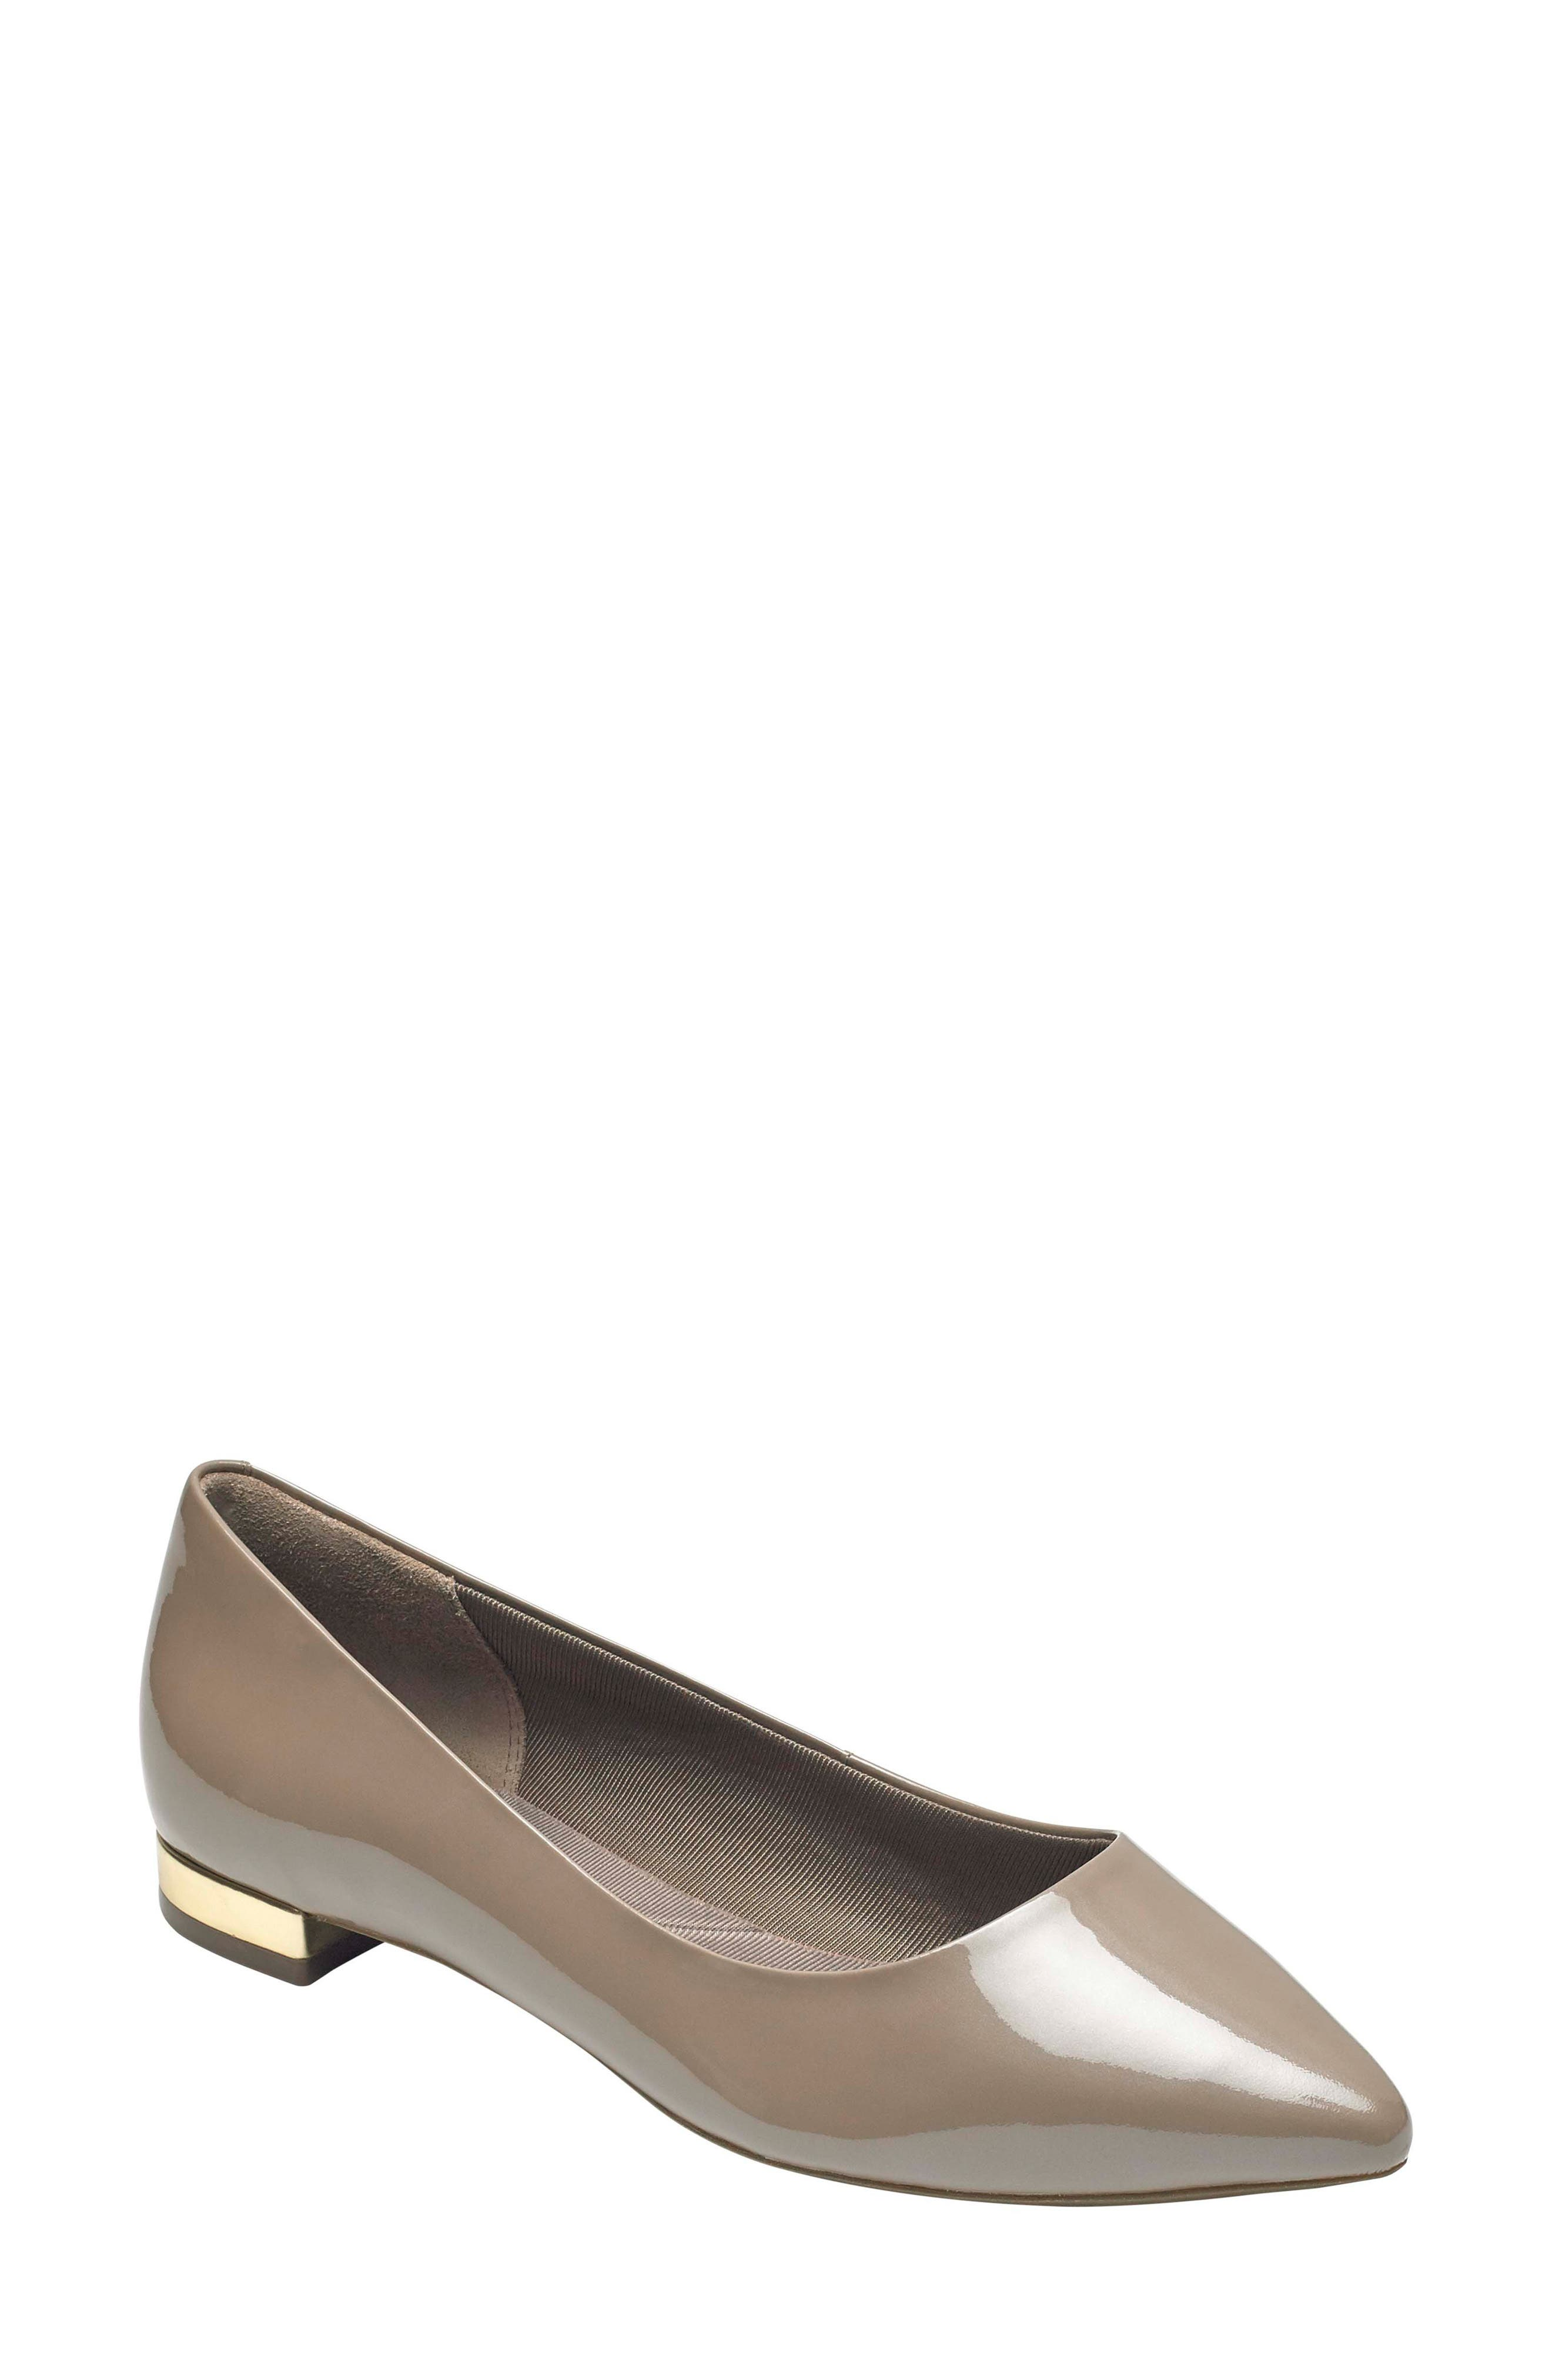 'Total Motion - Adelyn' Ballet Flat,                             Main thumbnail 1, color,                             TAUPE GREY PEARL PATENT